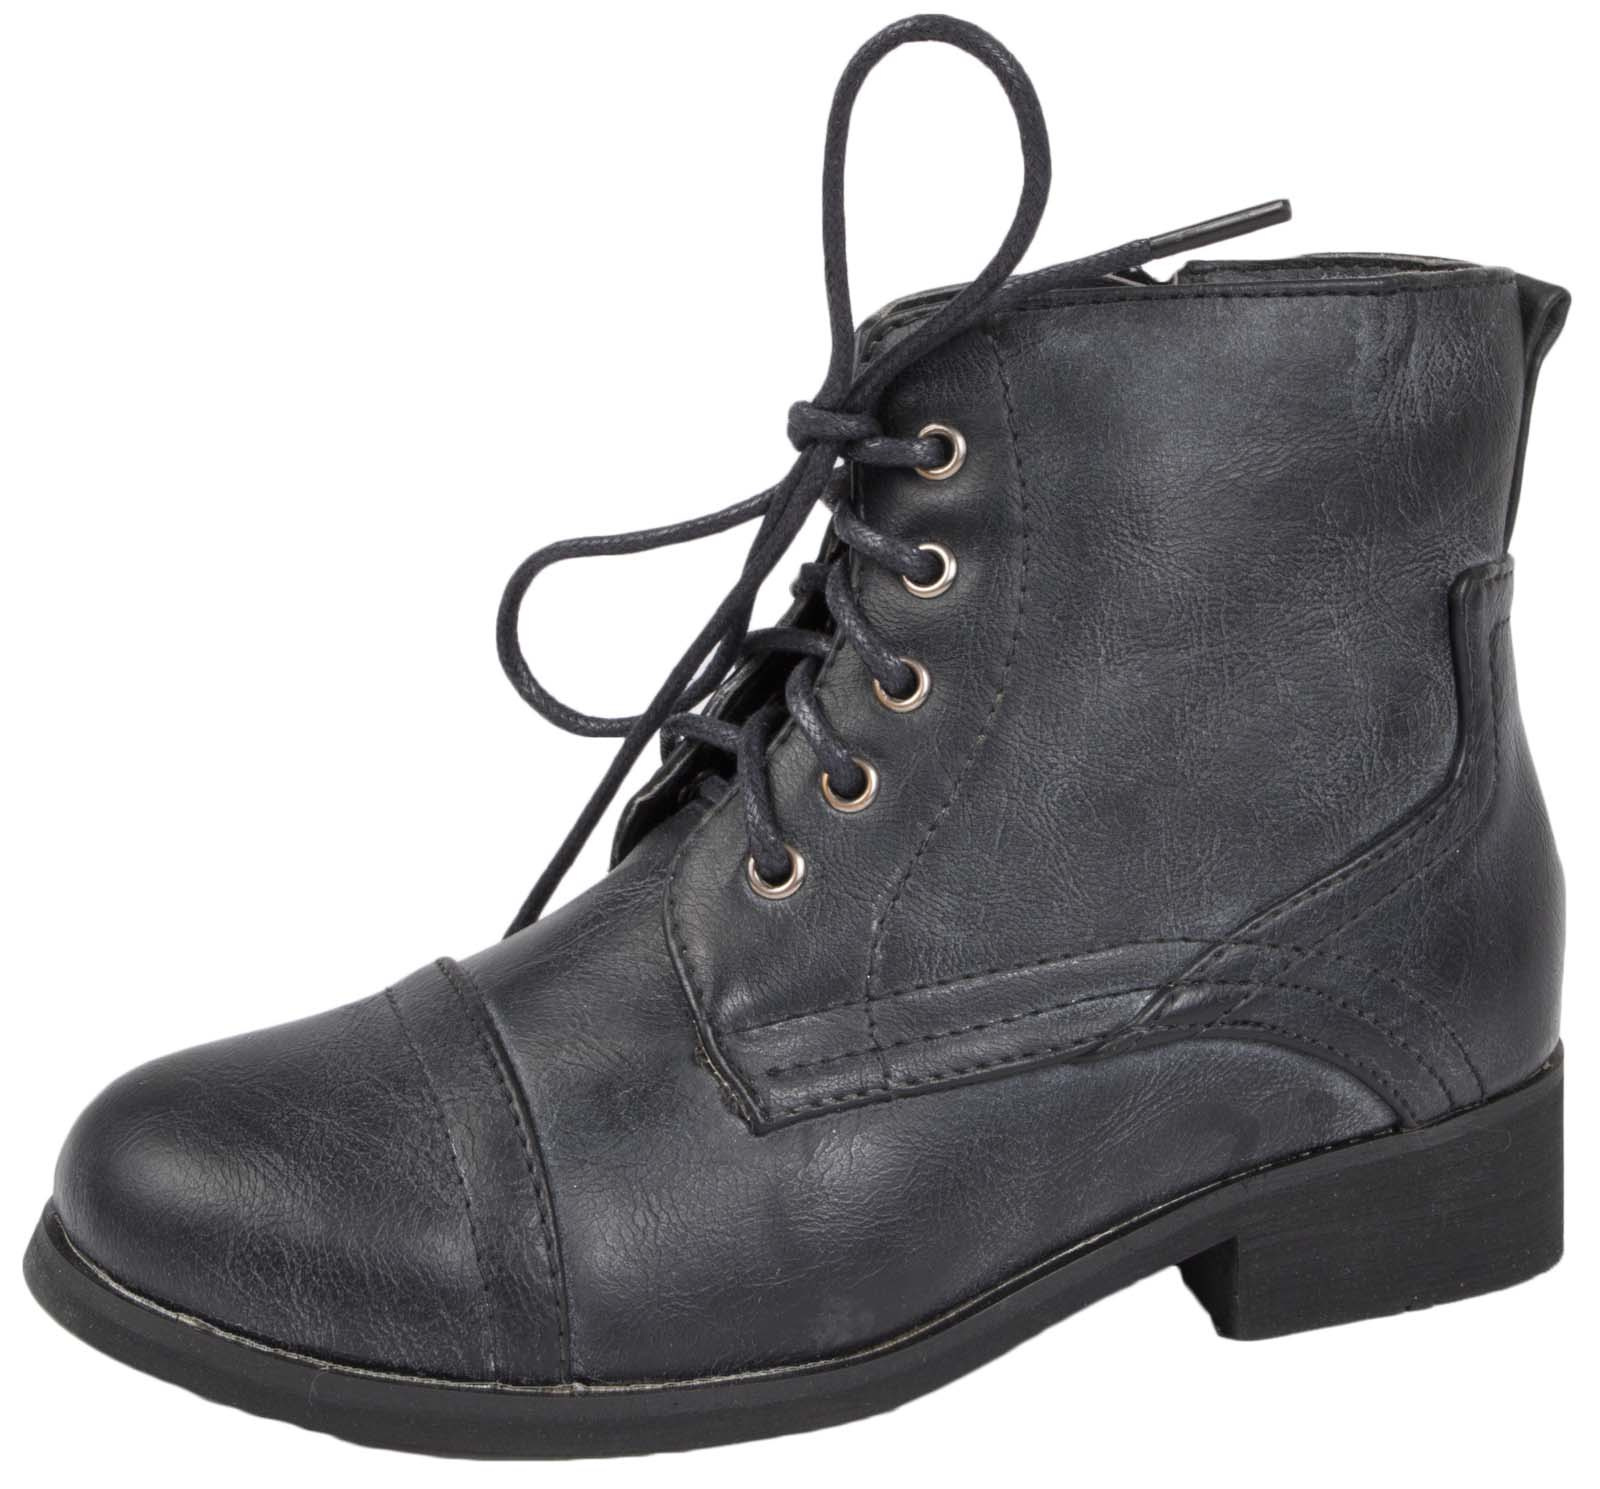 Details about Girls Lace Up Ankle Boots Faux Leather Pixie School Shoes Low  Heel Party Boots